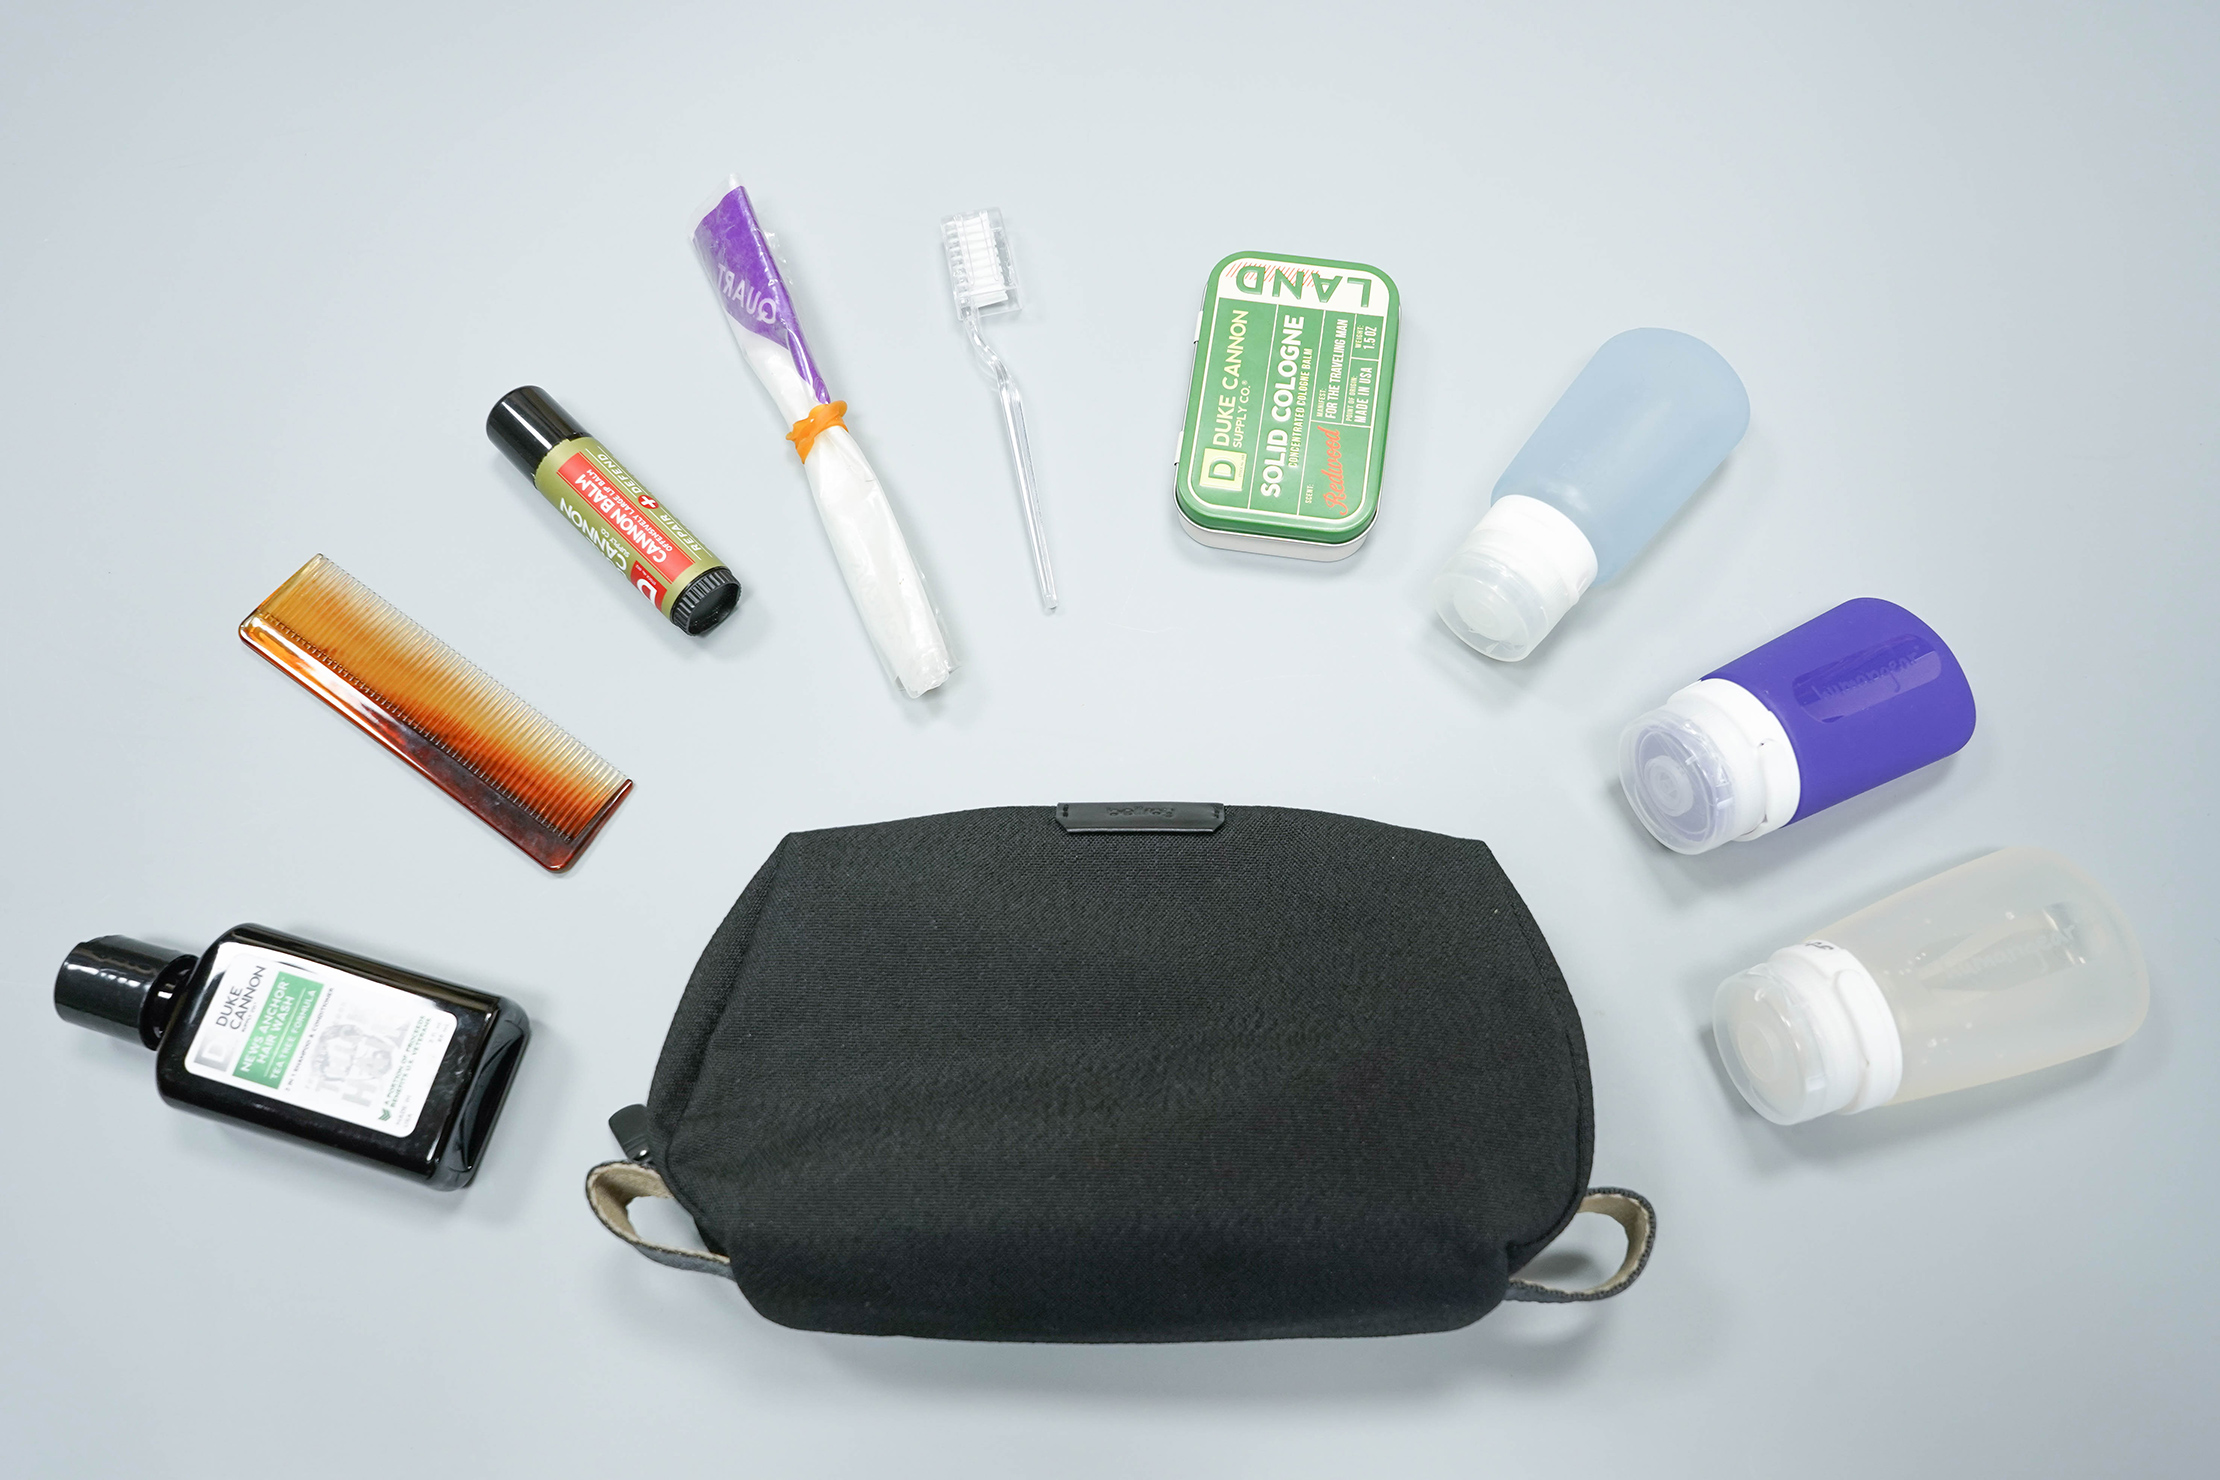 Bellroy Dopp Kit Flat Lay